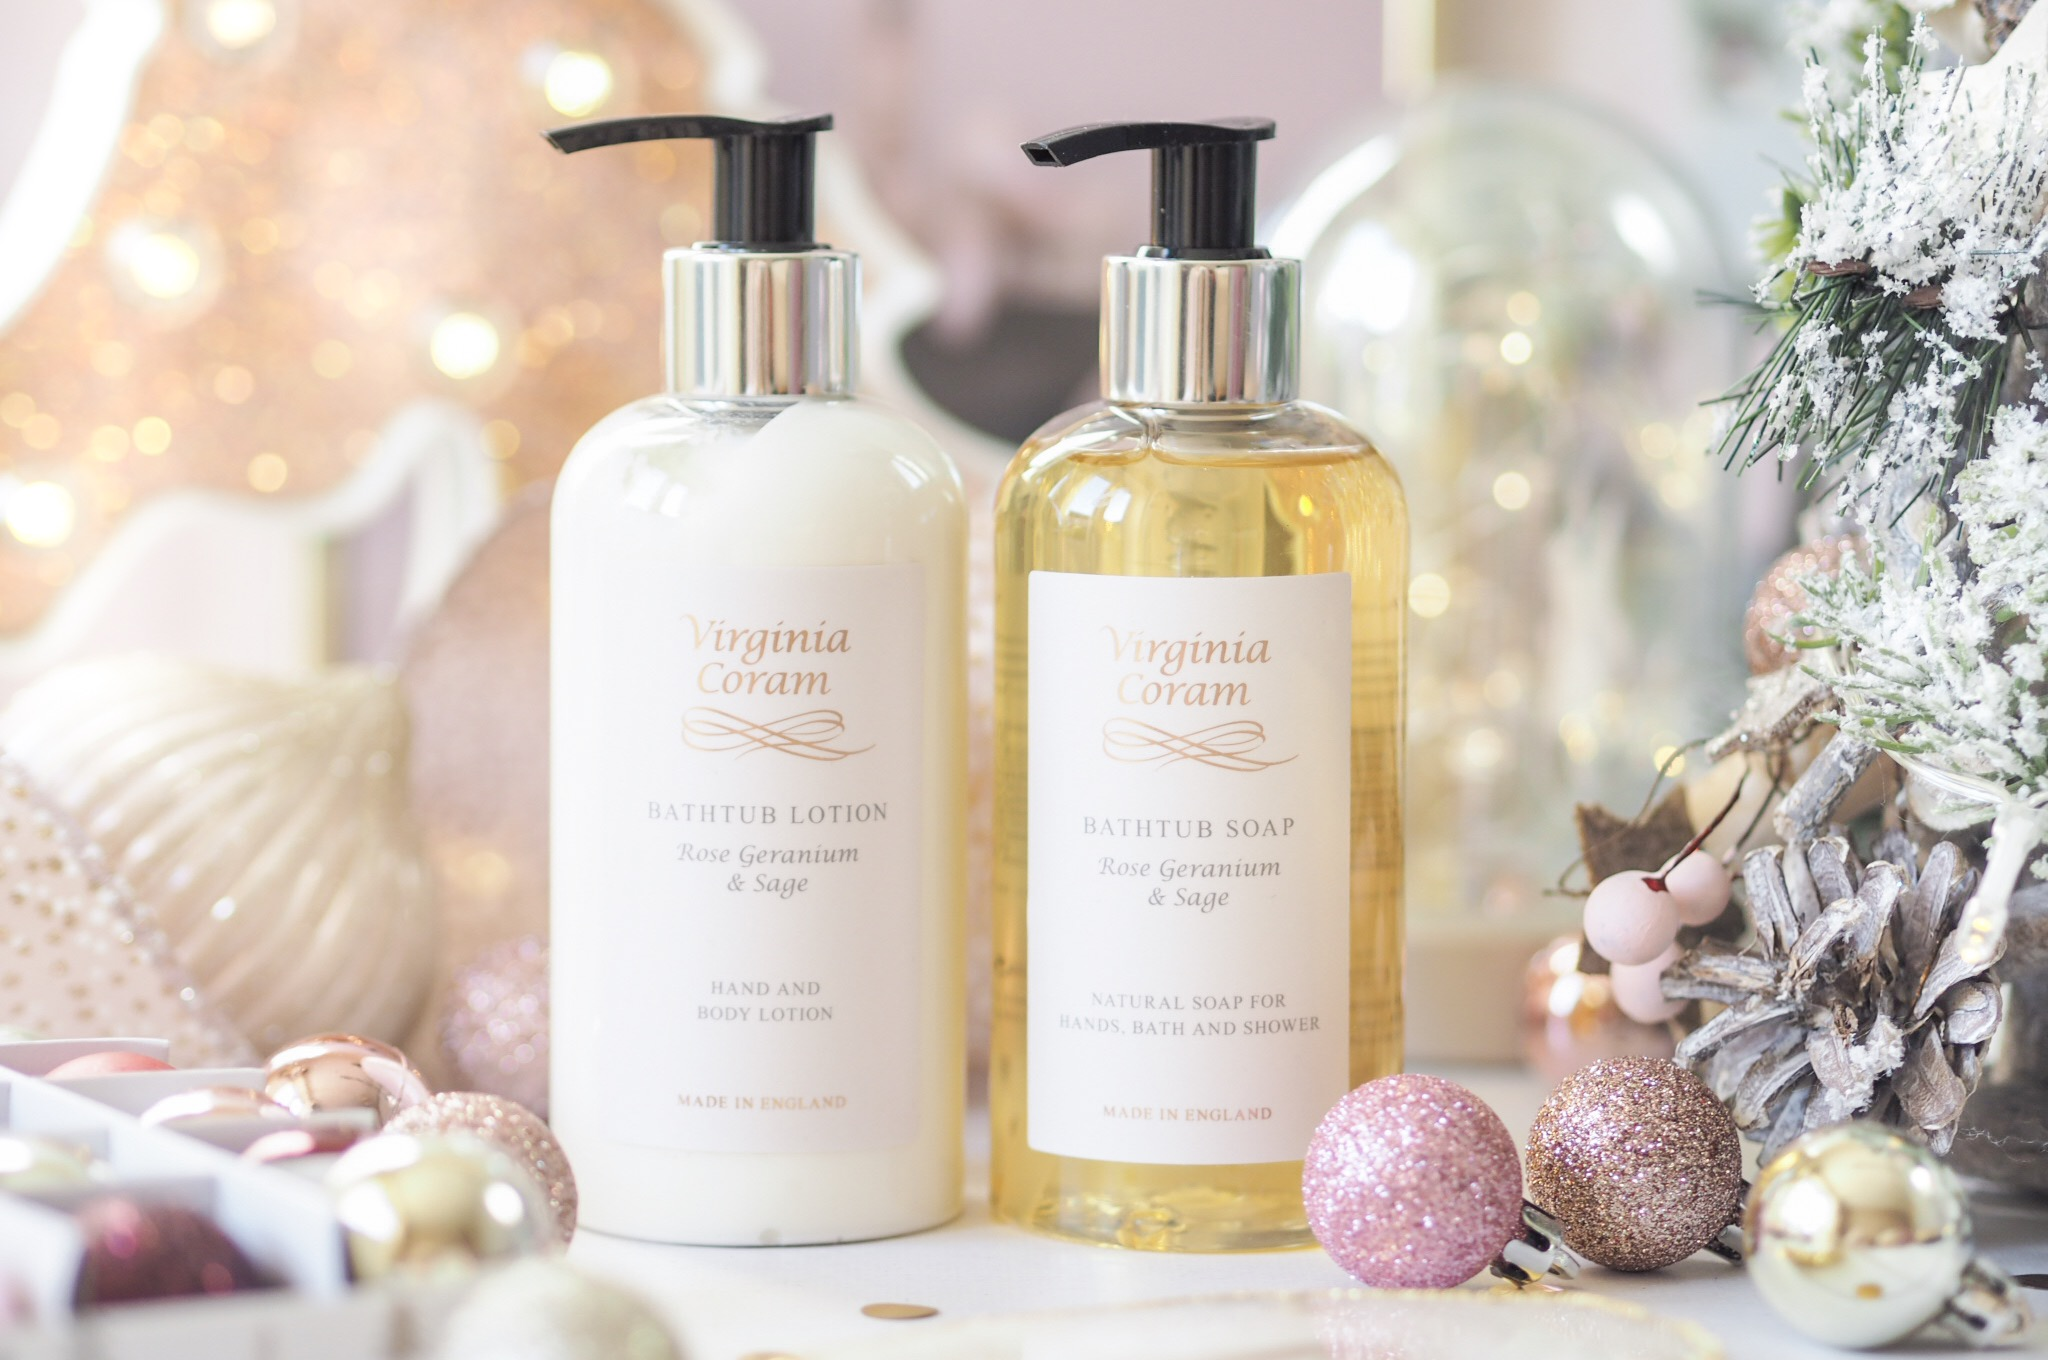 Virginia Coram Bathtub Gift Set